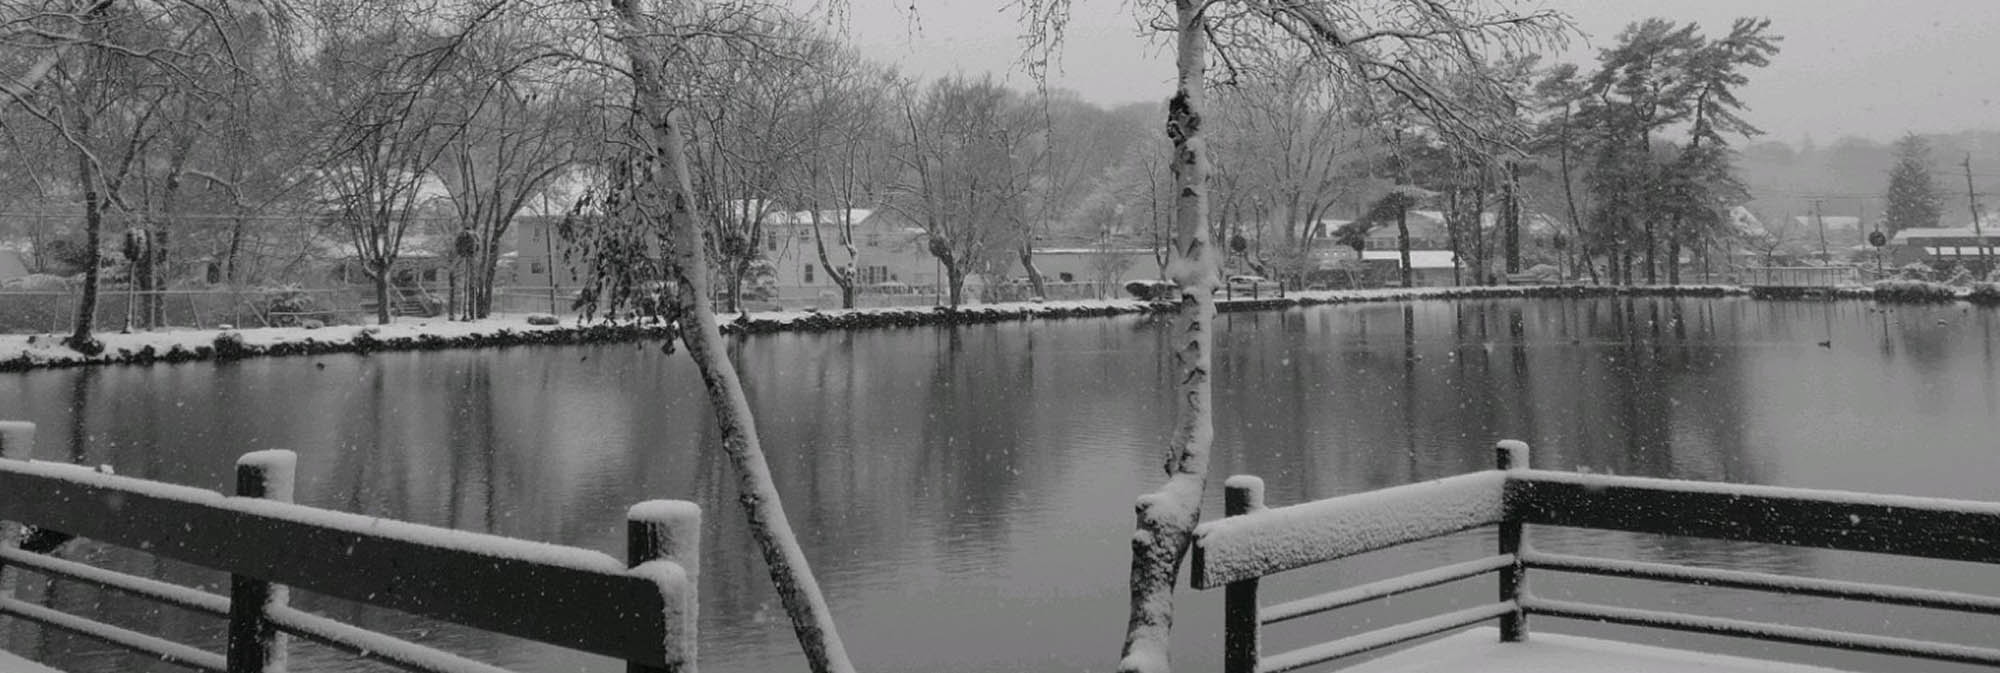 Photos: December Snow at Heckscher Park